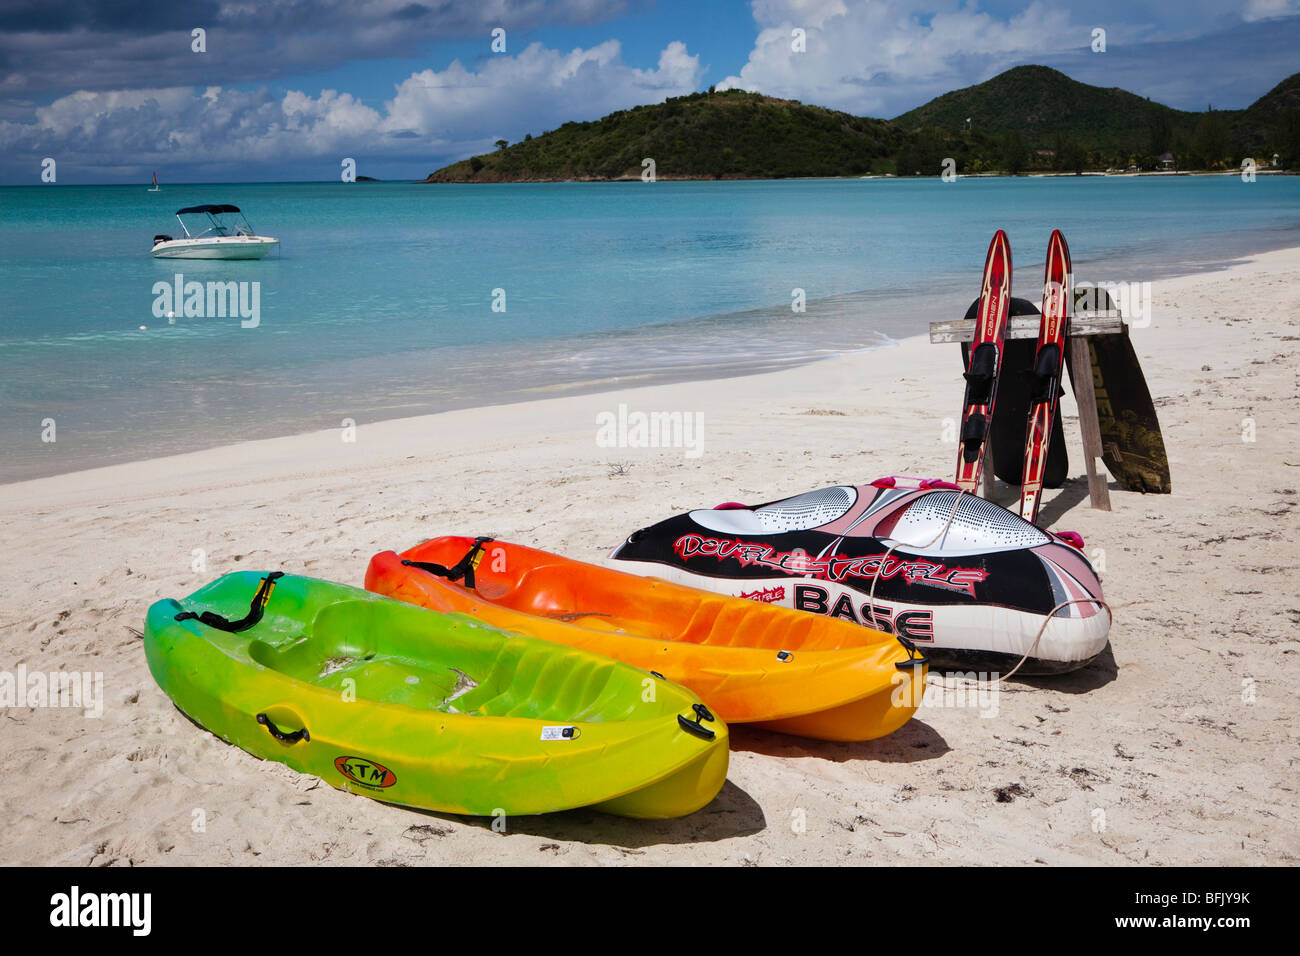 canoes and waterskis on the beach at Lignum Vitae Bay, Antigua - Stock Image